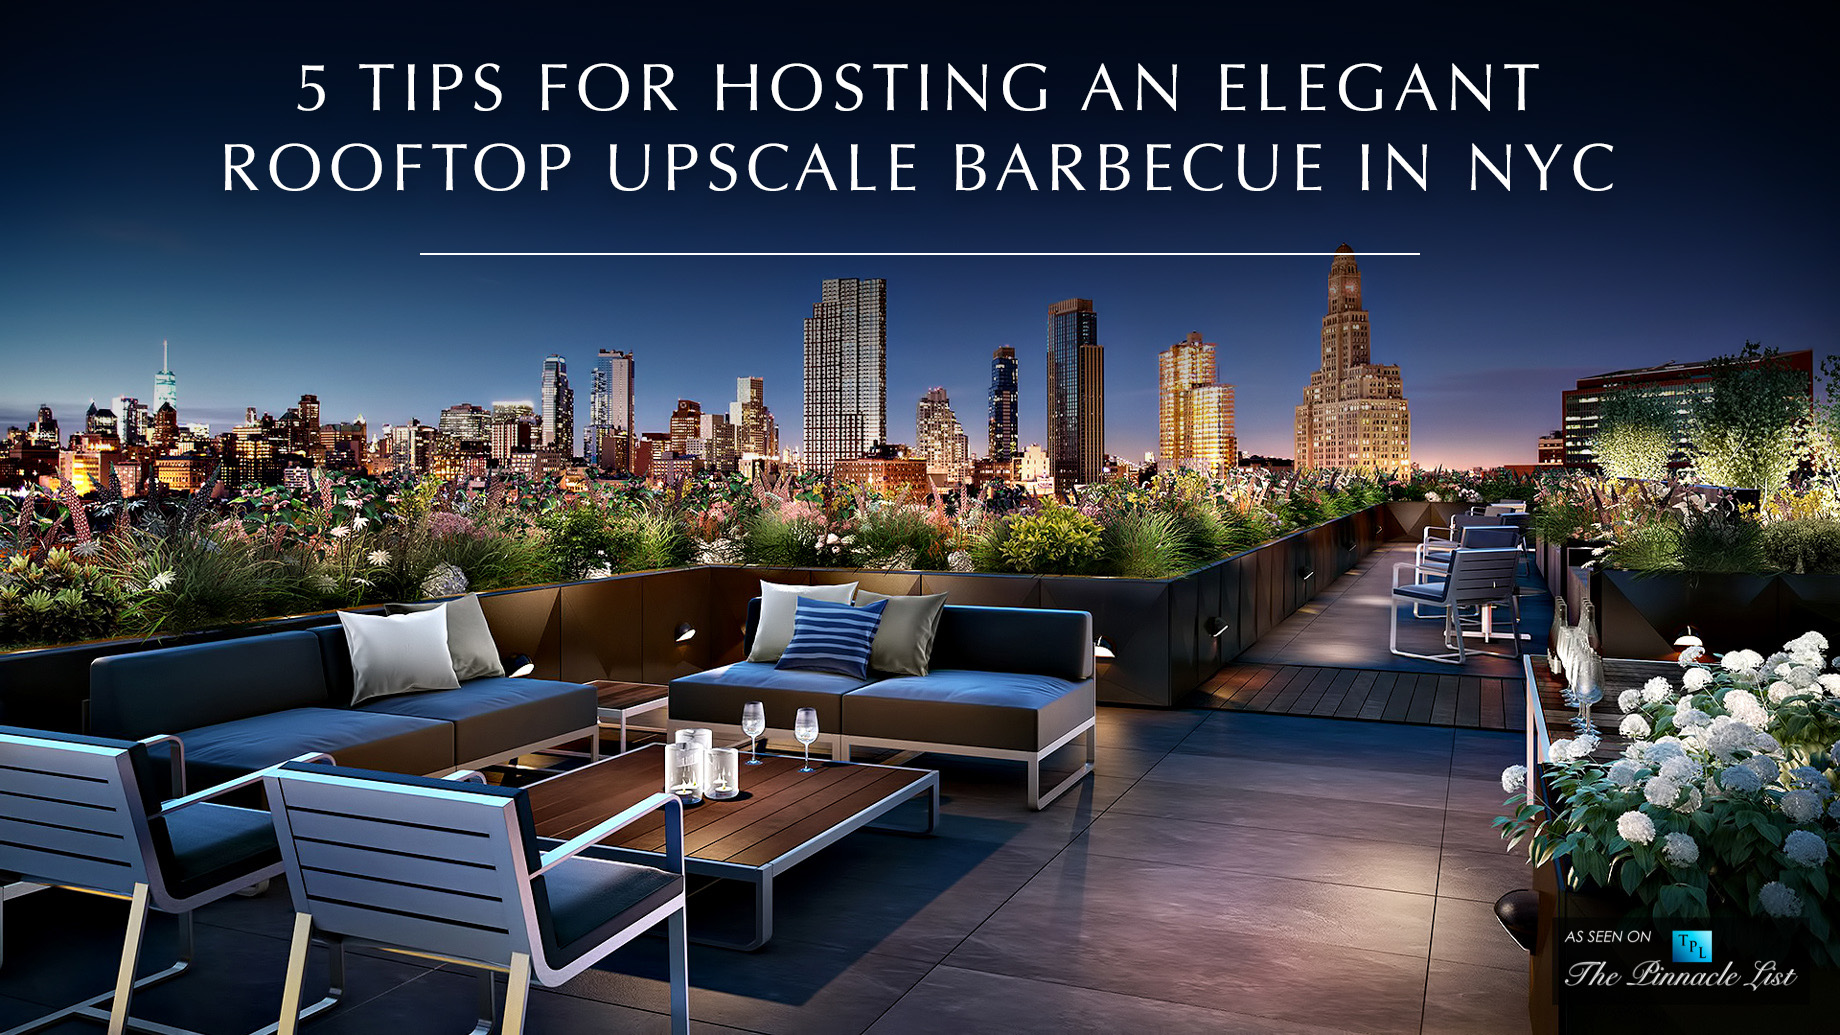 5 Tips for Hosting an Elegant Rooftop Upscale Barbecue in NYC